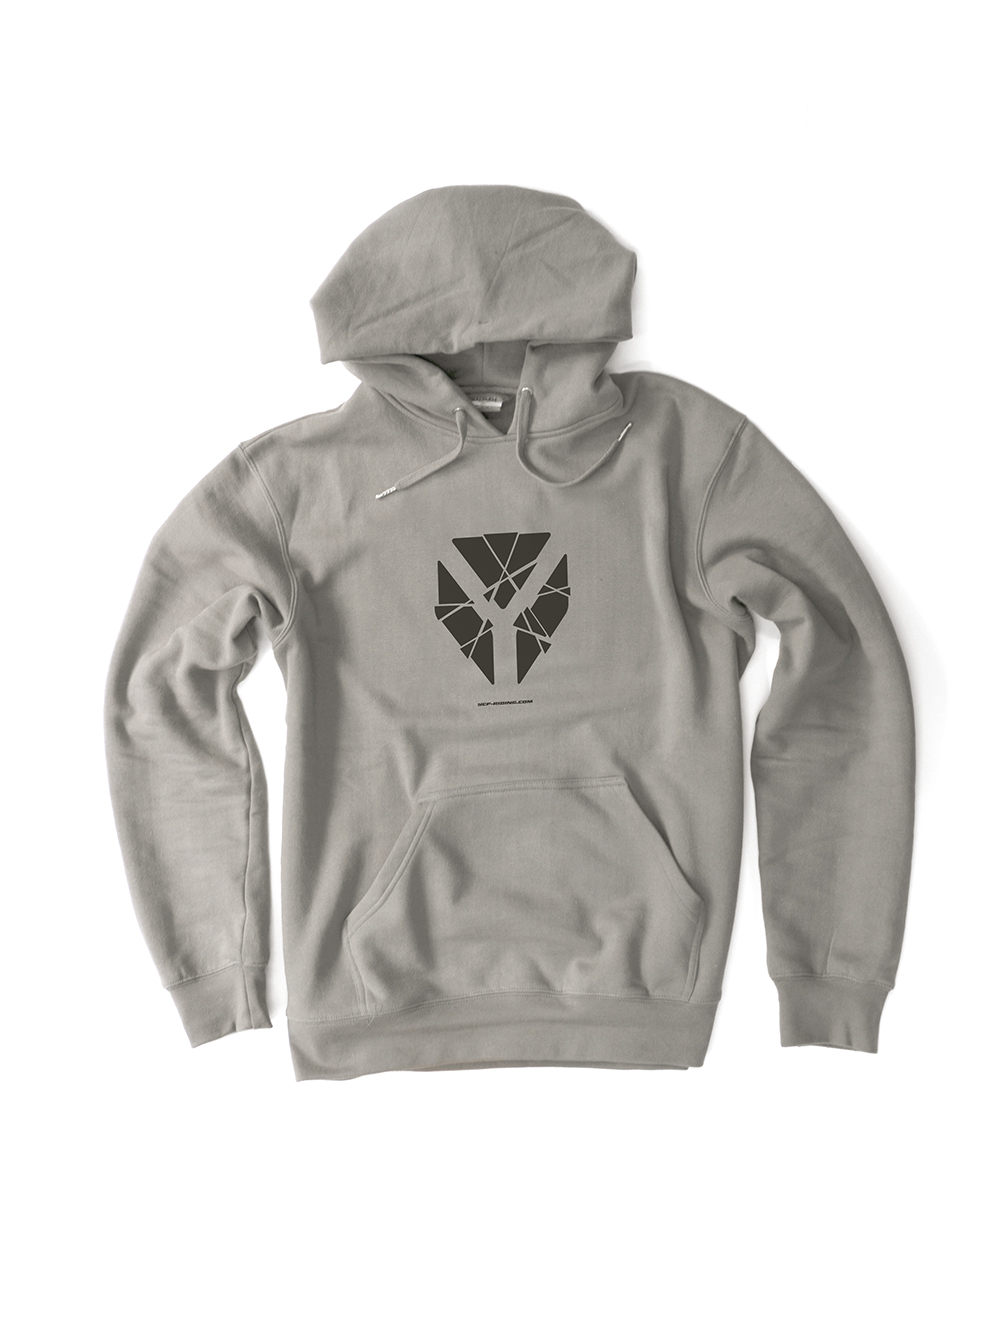 SWEAT SHIRT GREY (XXL)